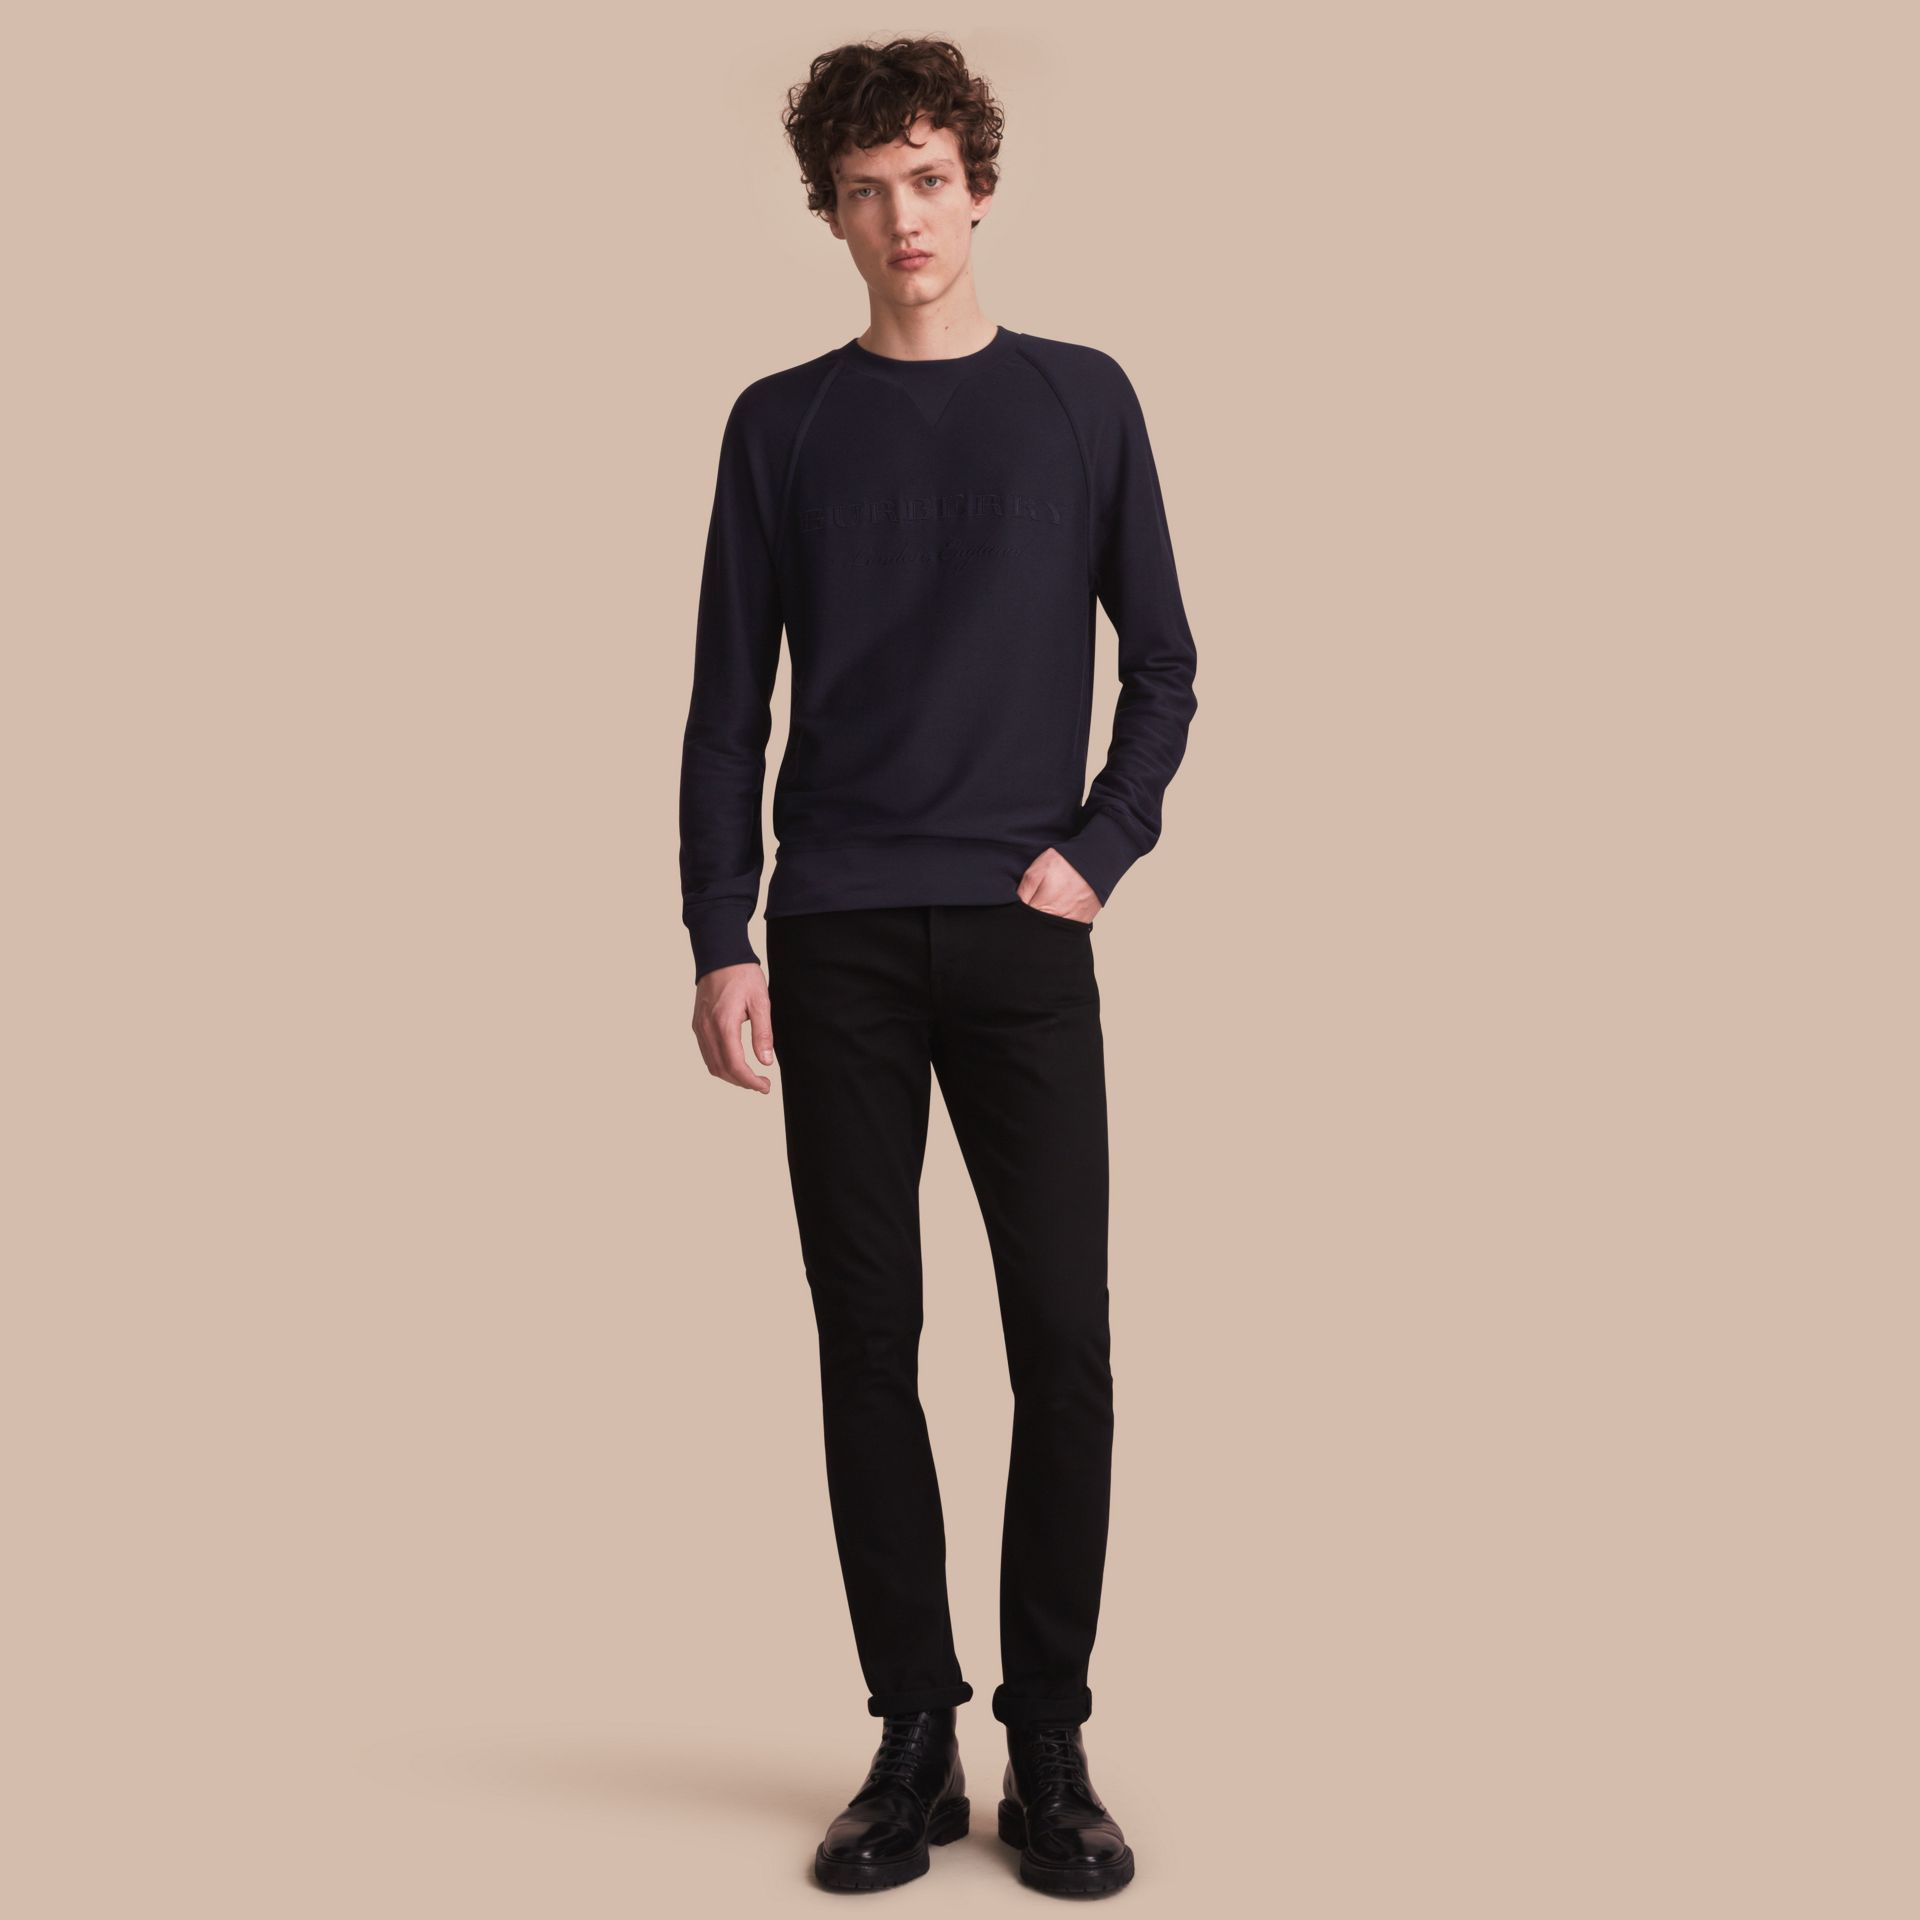 Embroidered Motif Cotton-blend Jersey Sweatshirt Navy - gallery image 1